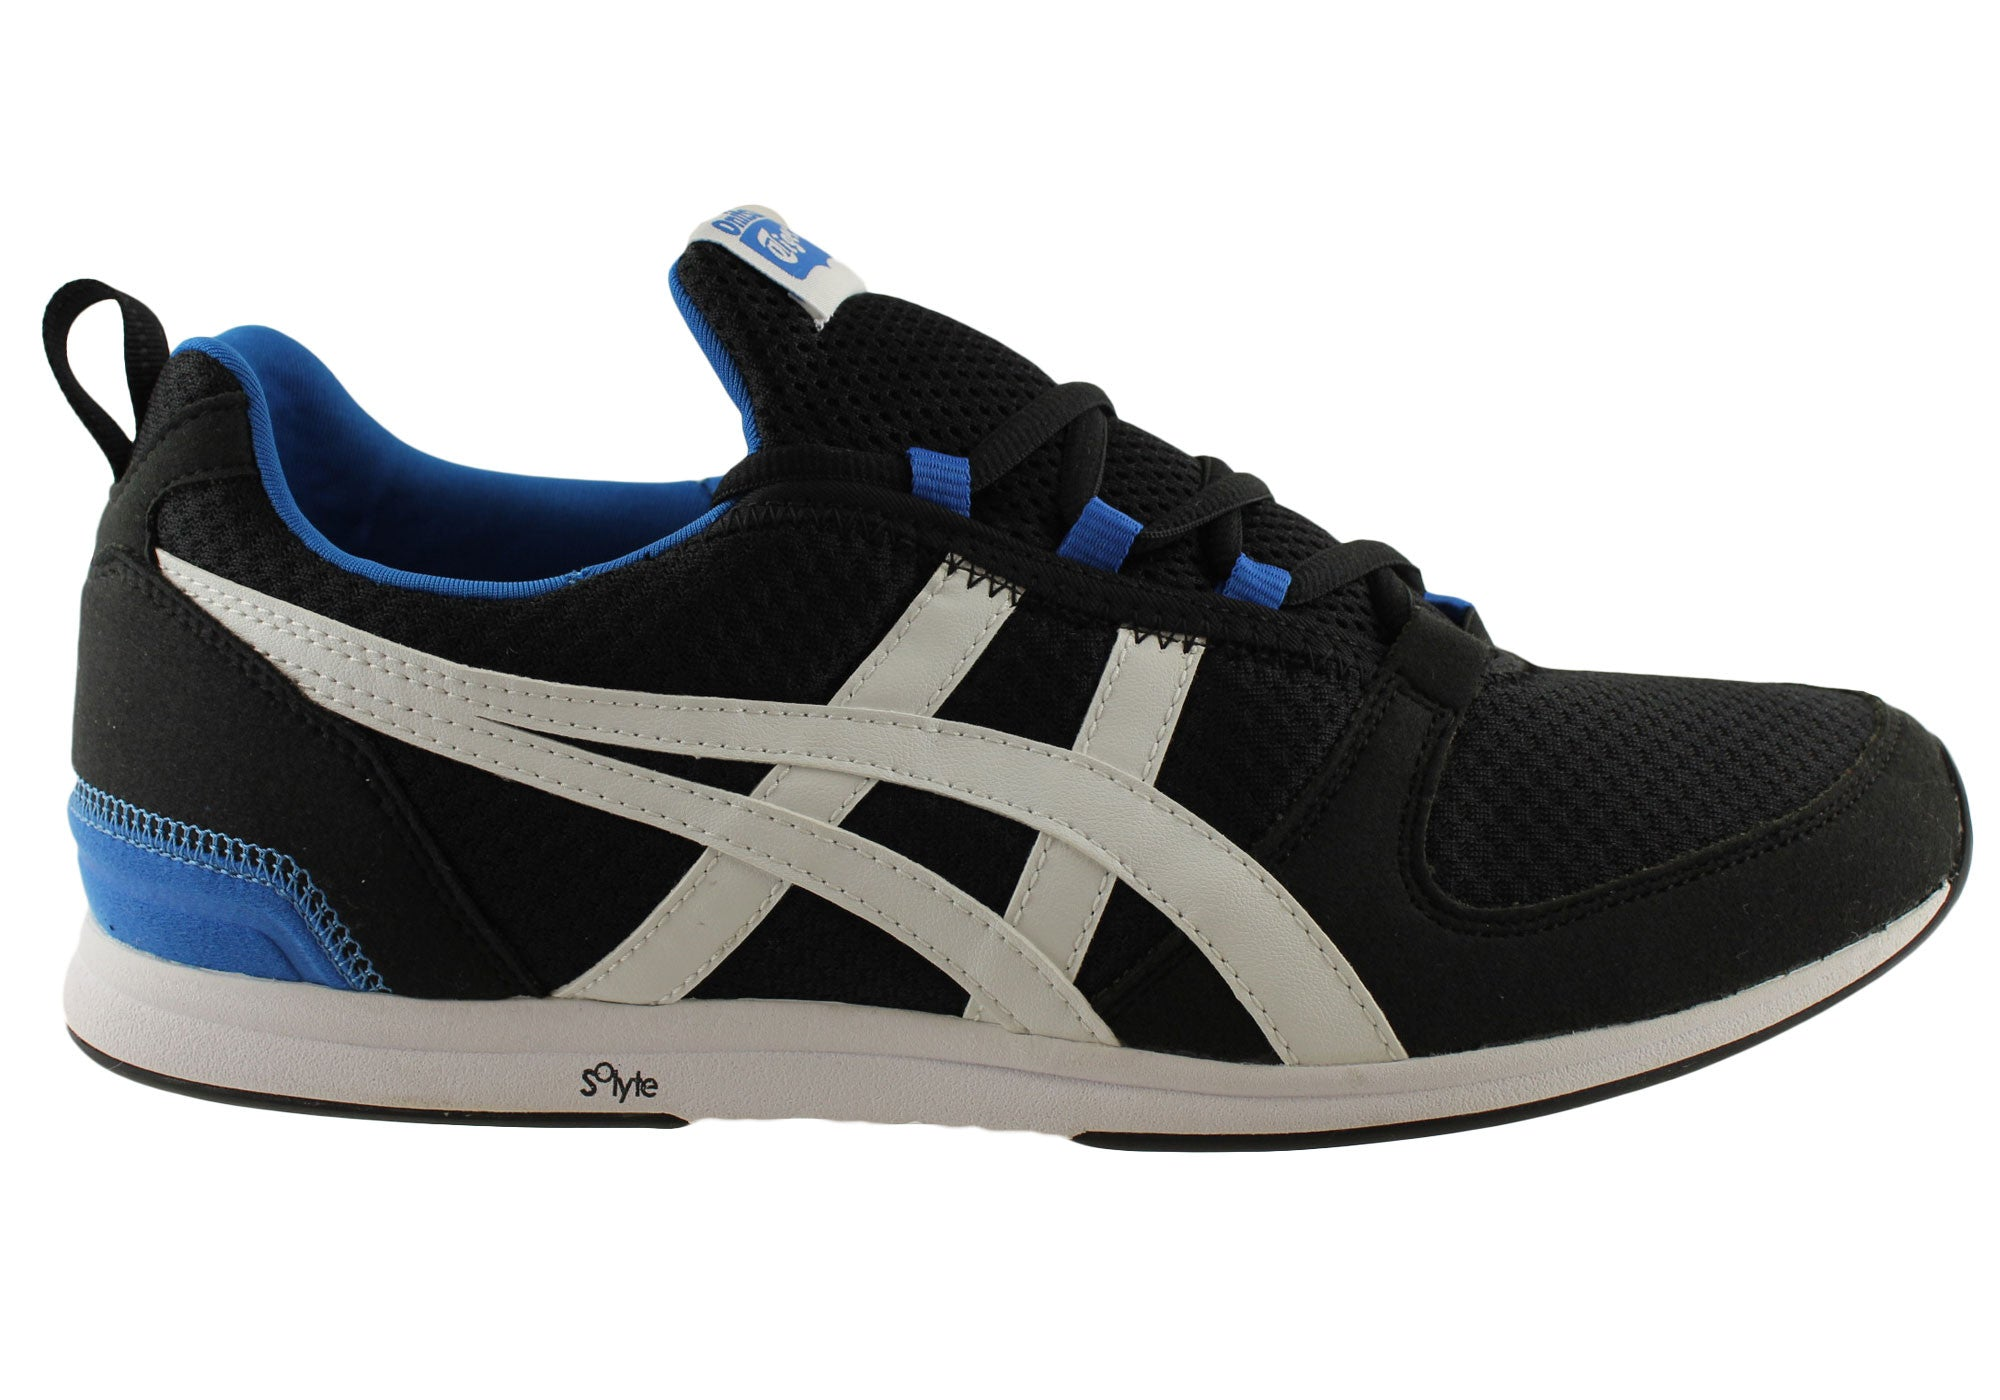 low priced 4b57d 23a6c Asics Onitsuka Tiger Ult-Racer Mens Casual Shoes